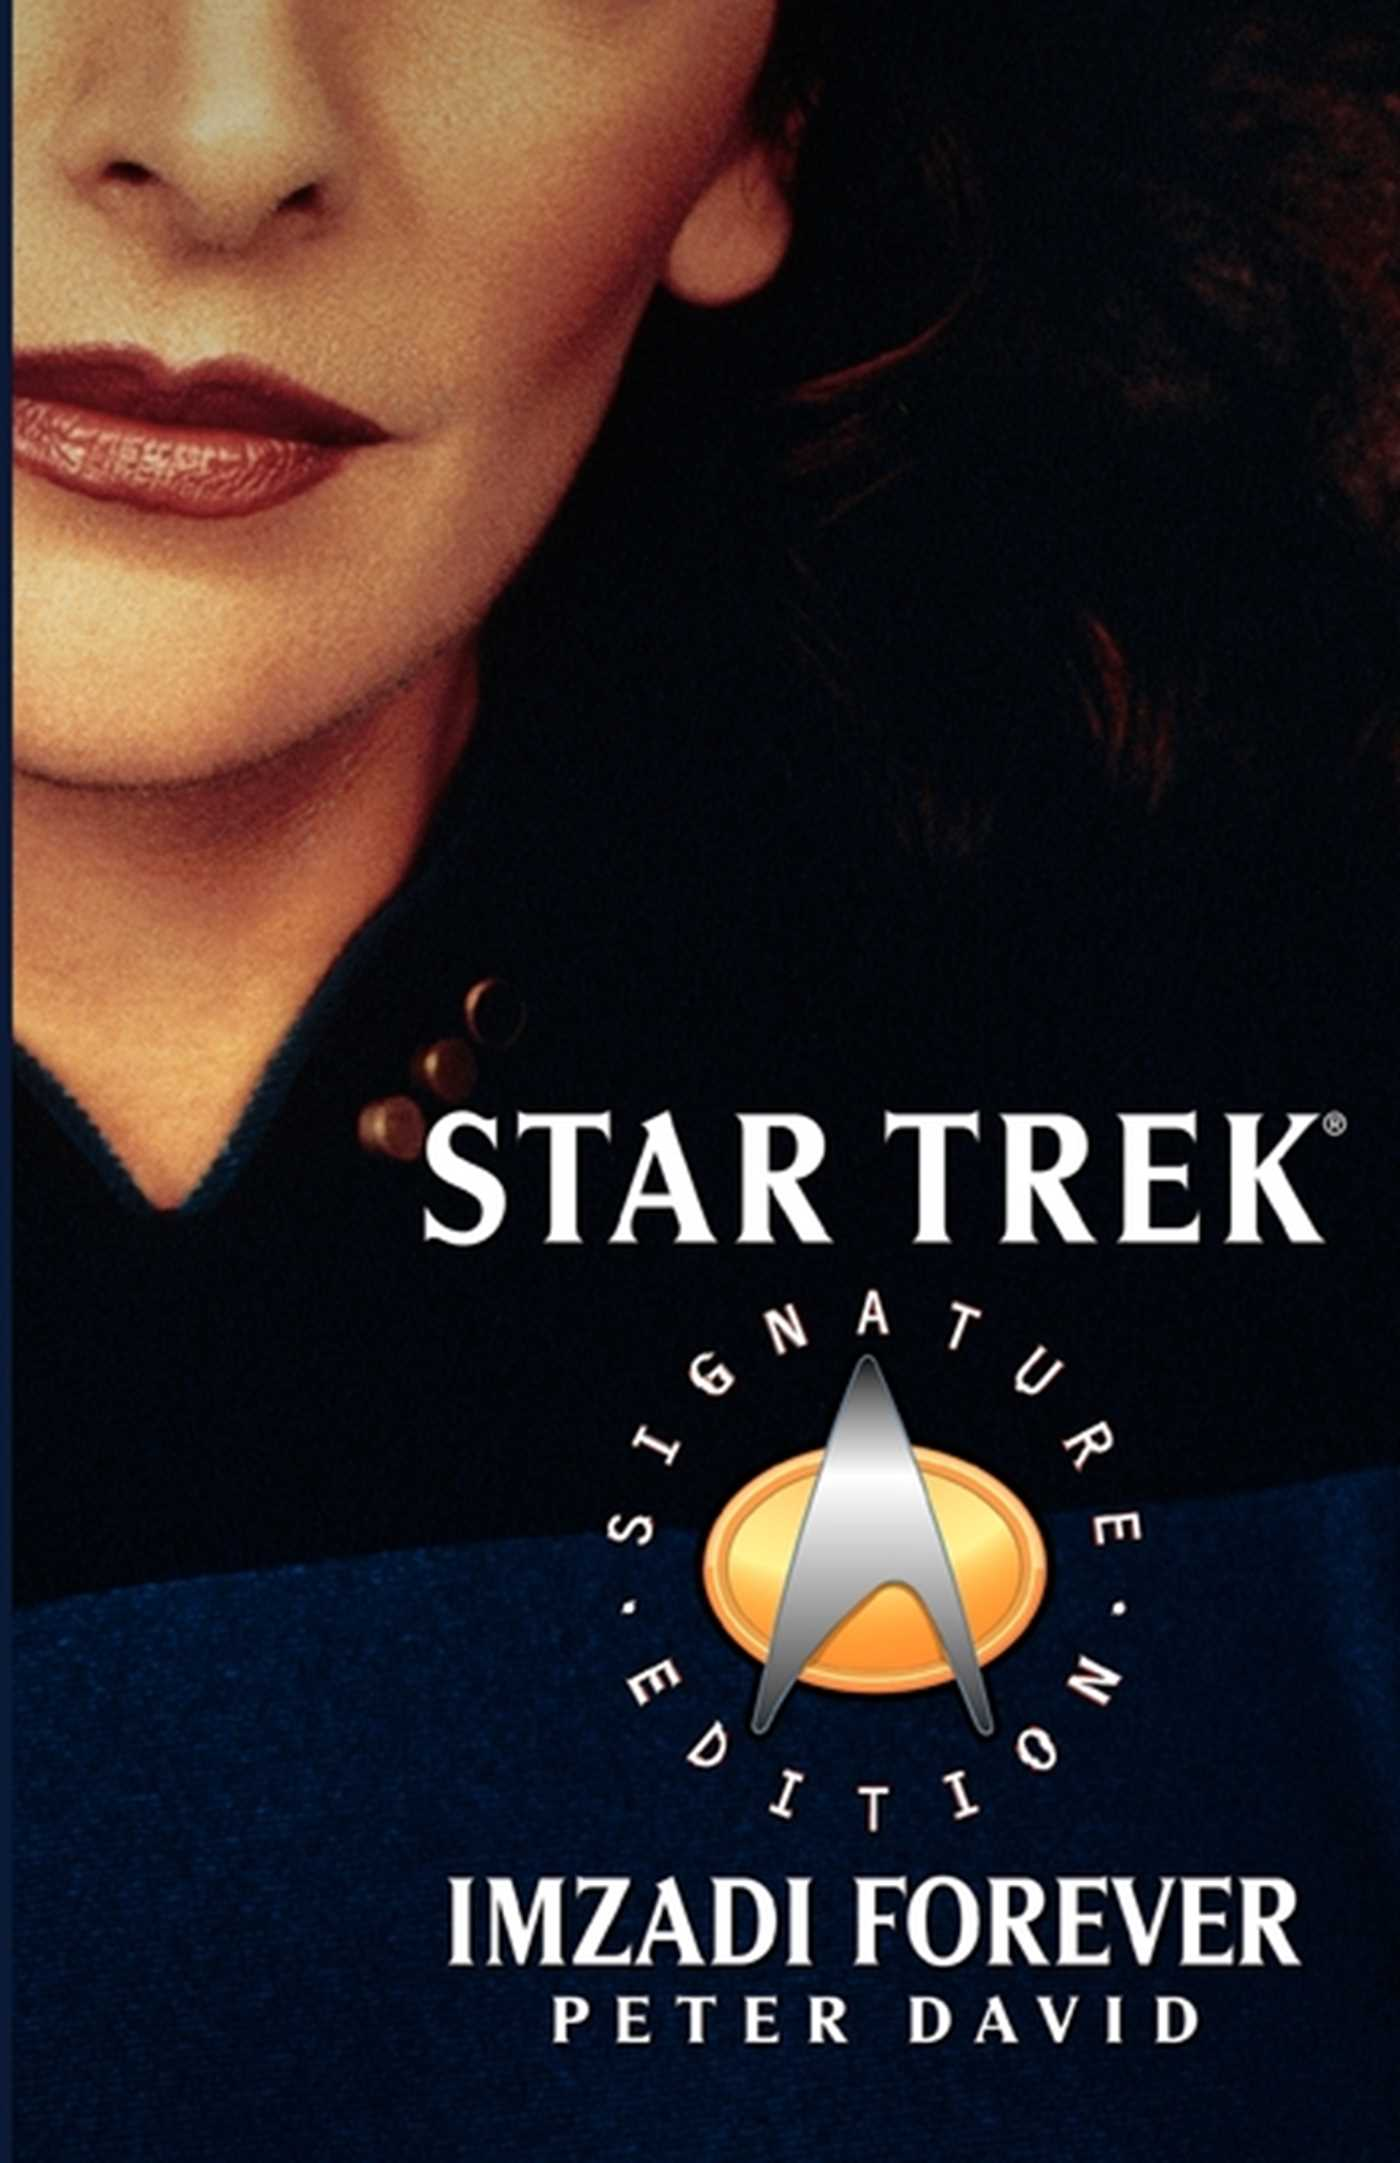 Star trek signature edition imzadi forever 9780743492645 hr